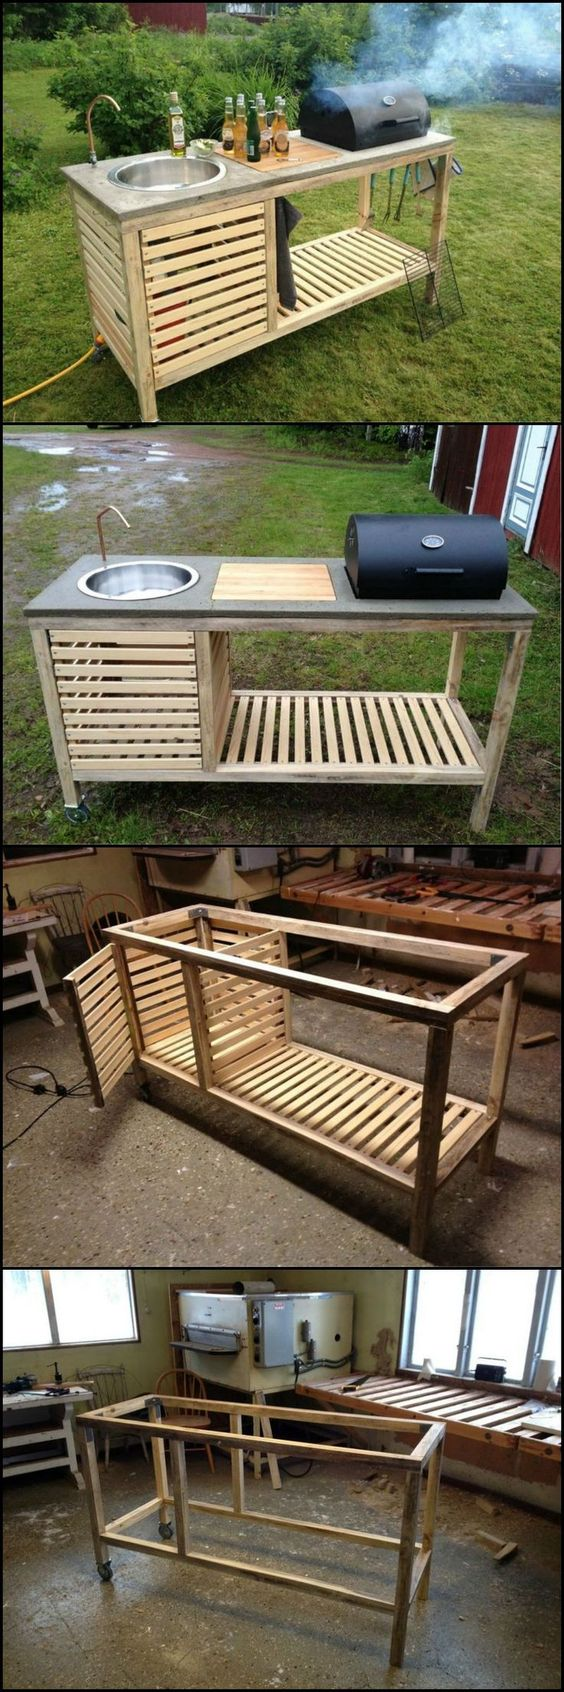 How to build a portable kitchen for your backyard outdoor - How to build an outdoor kitchen a practical terrace ...